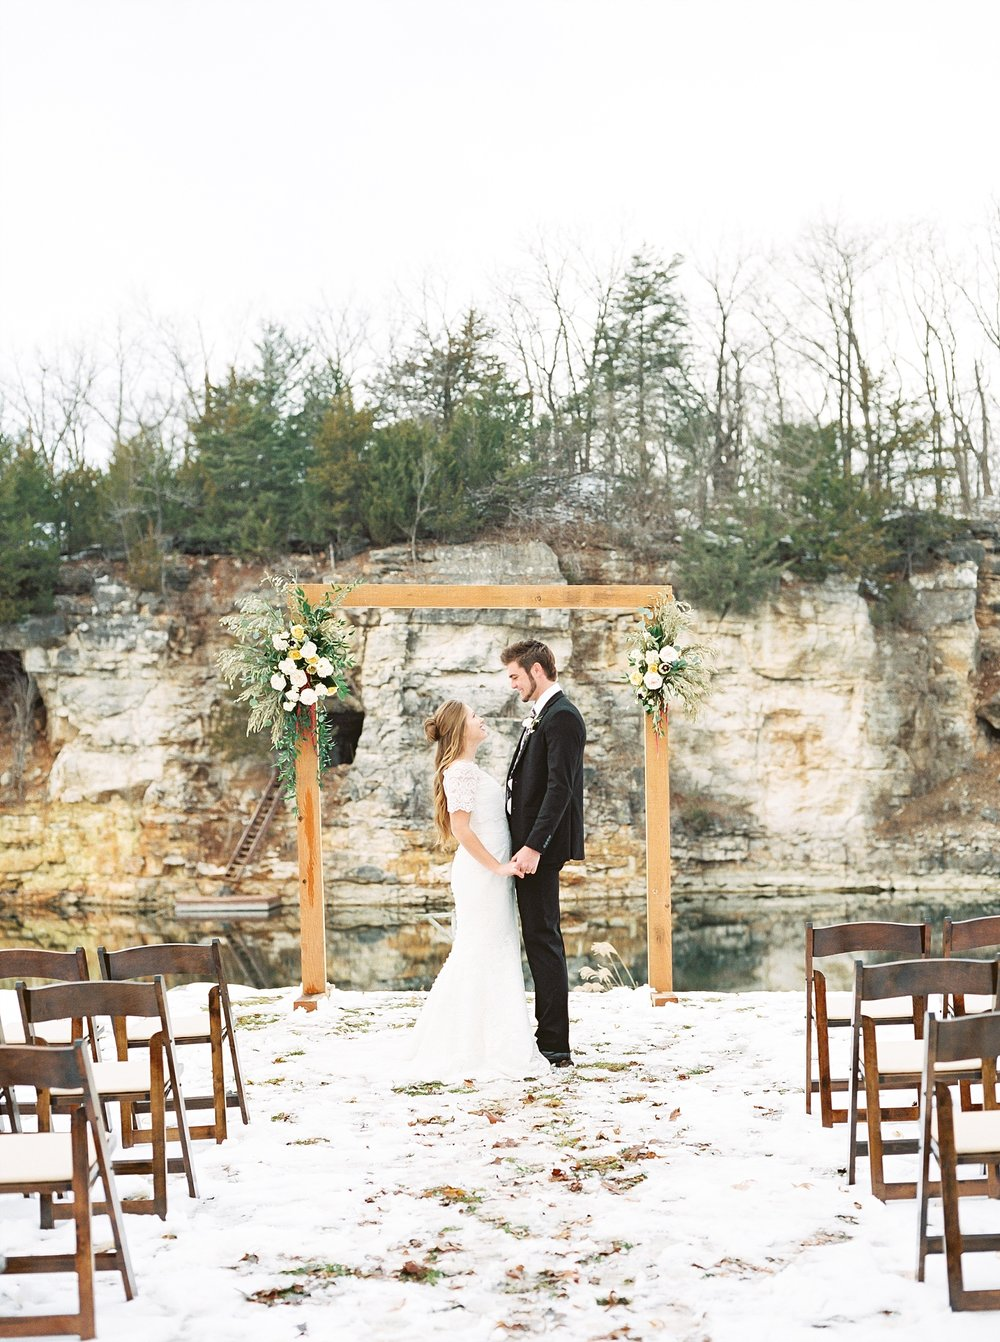 Snowy Winter Wedding at Wildcliff Events Lake With Earthy Jewel Tones and Organic Refined Style by Kelsi Kliethermes Photography Kansas City Missouri Wedding Photographer_0113.jpg